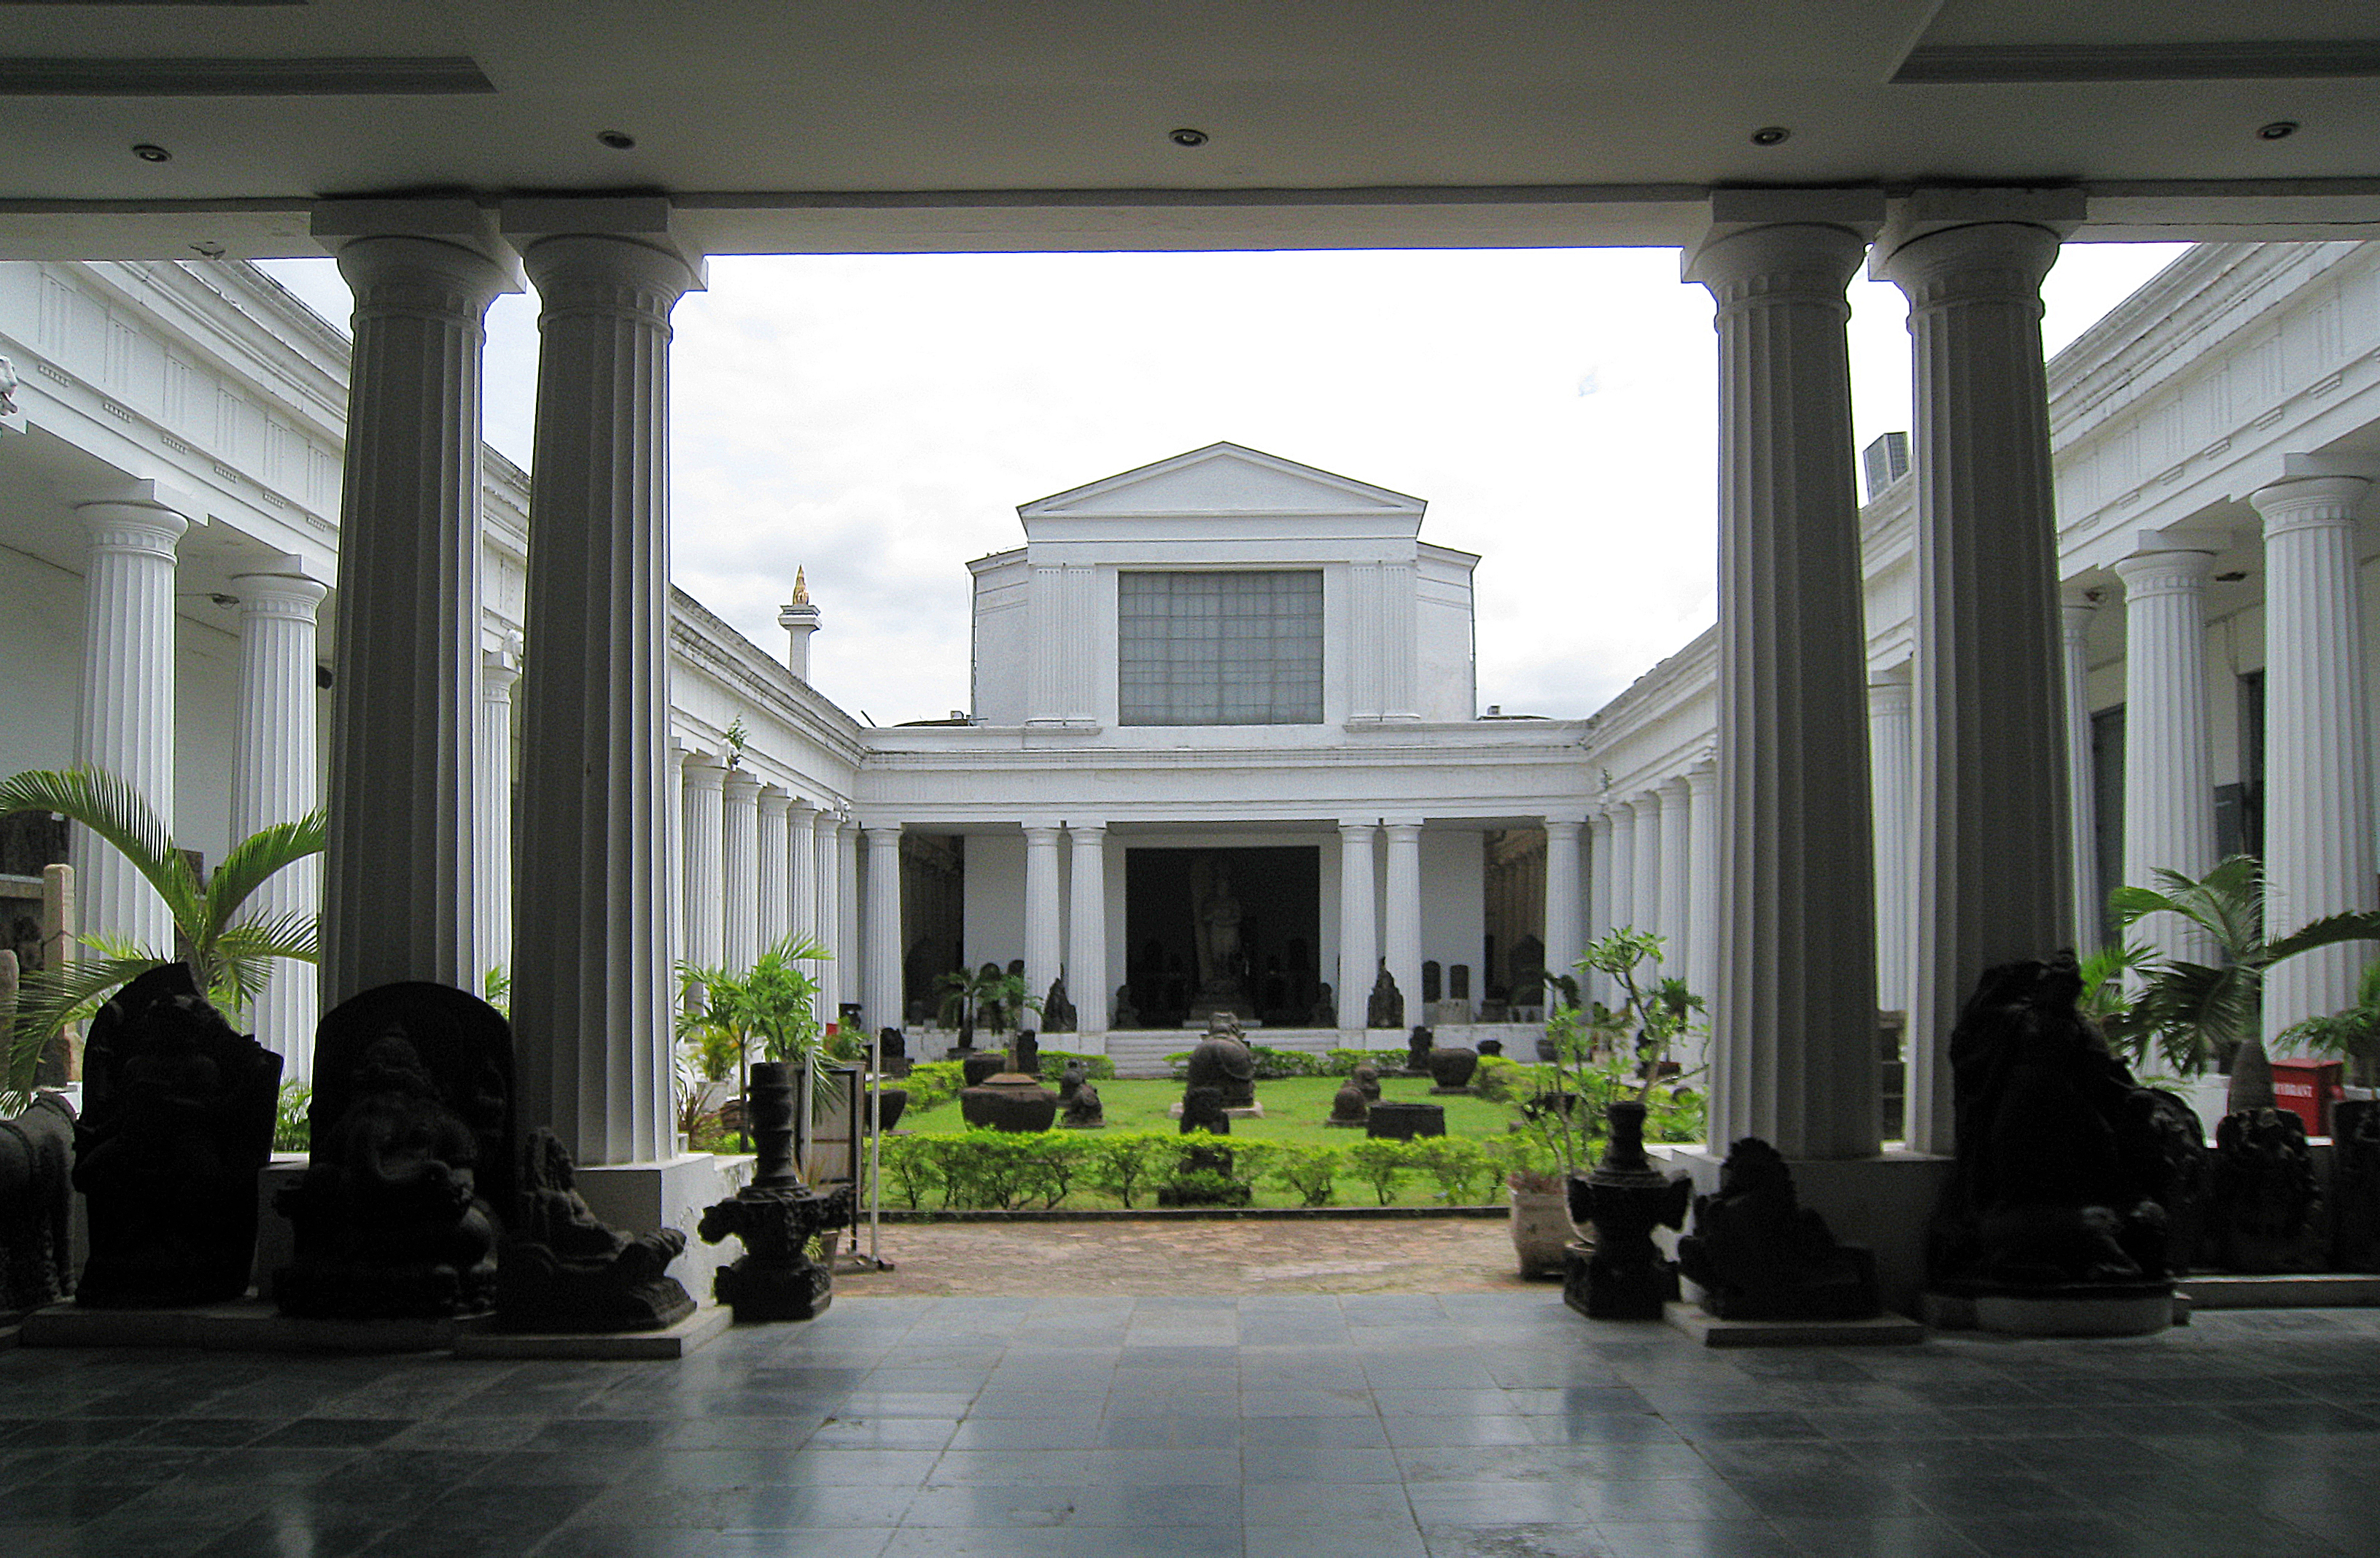 https://upload.wikimedia.org/wikipedia/commons/3/39/Museum_Nasional_Courtyard.jpg